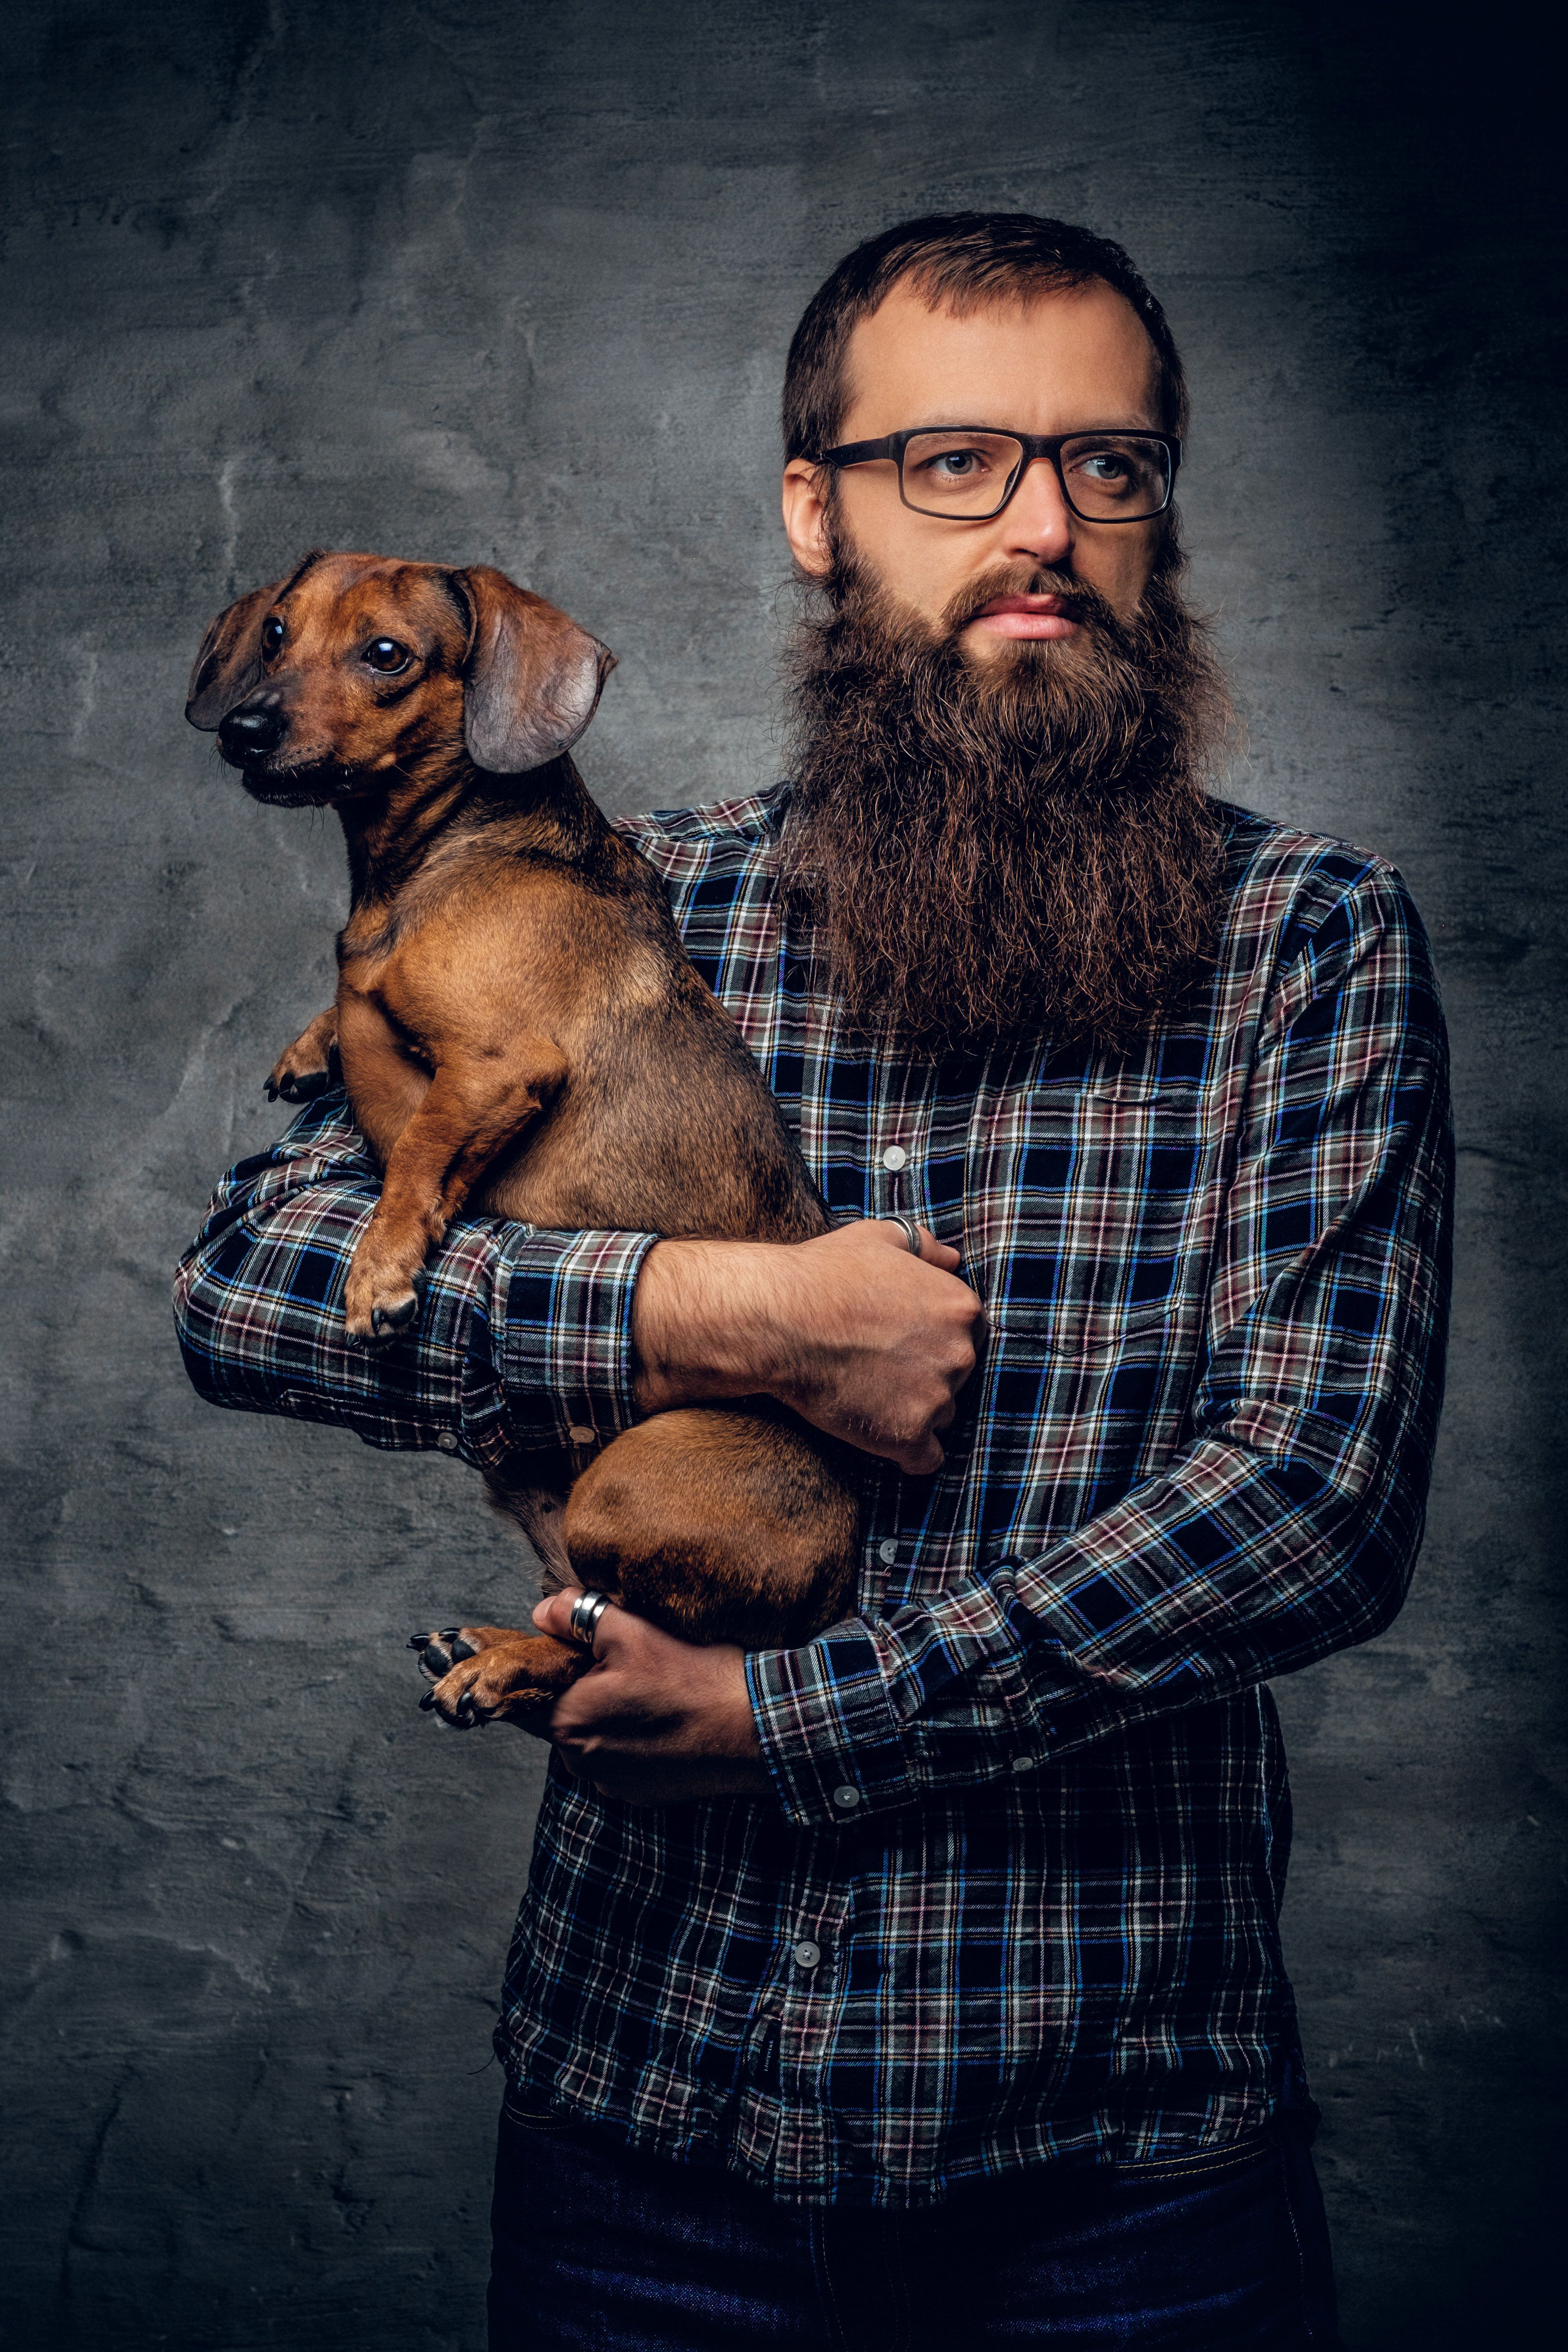 Bearded hipster male in eyeglasses dressed in a plaid shirt holds in arms cute littlebadger dog.